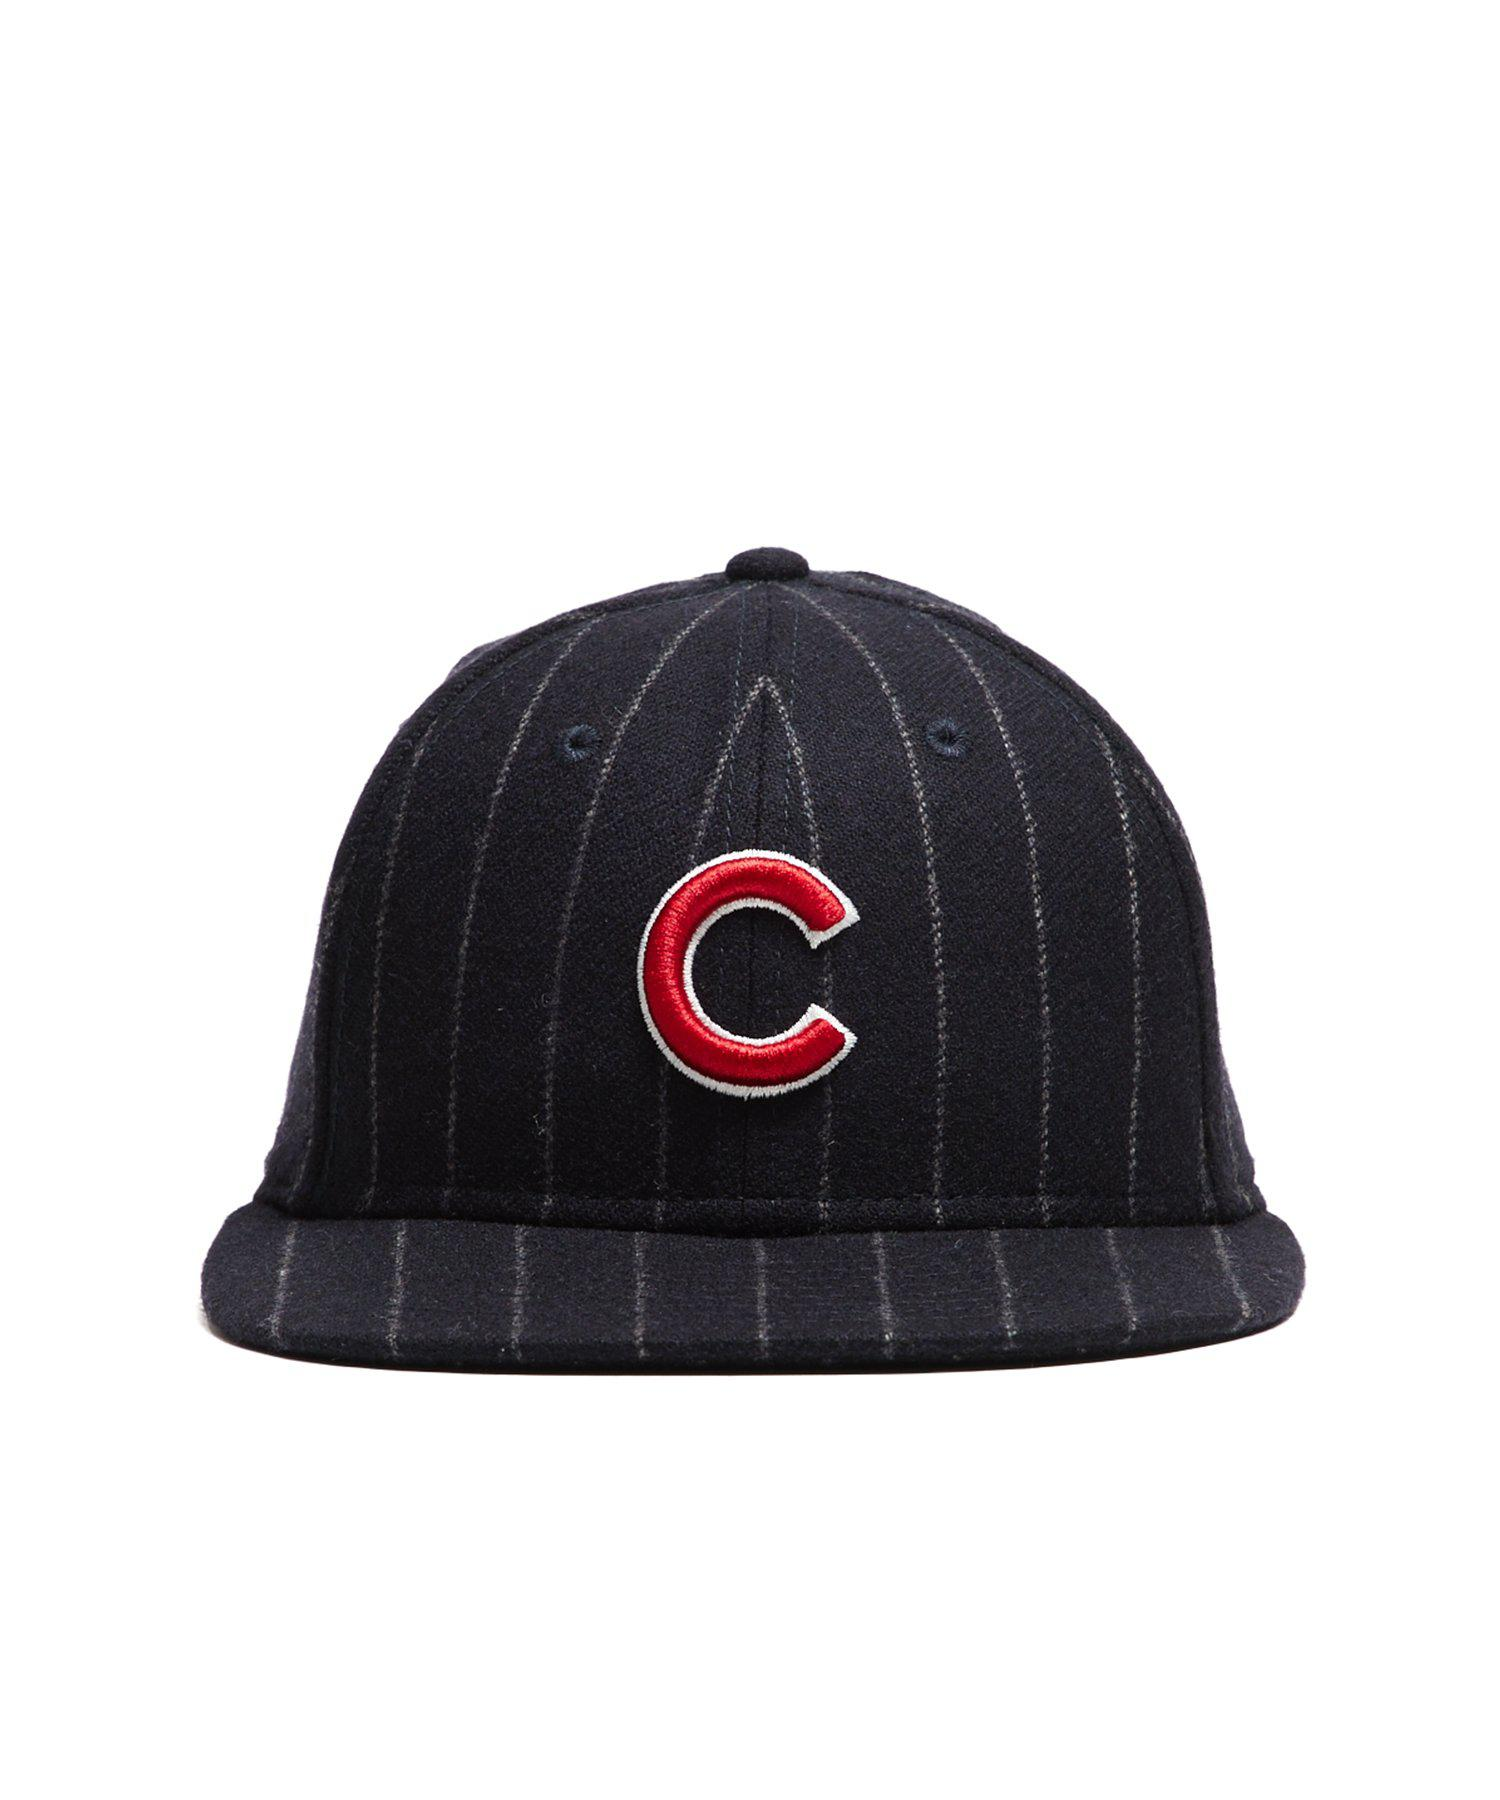 b4b63627d78 ... discount code for new era hats exclusive new era chicago cubs cap in  abraham moon navy